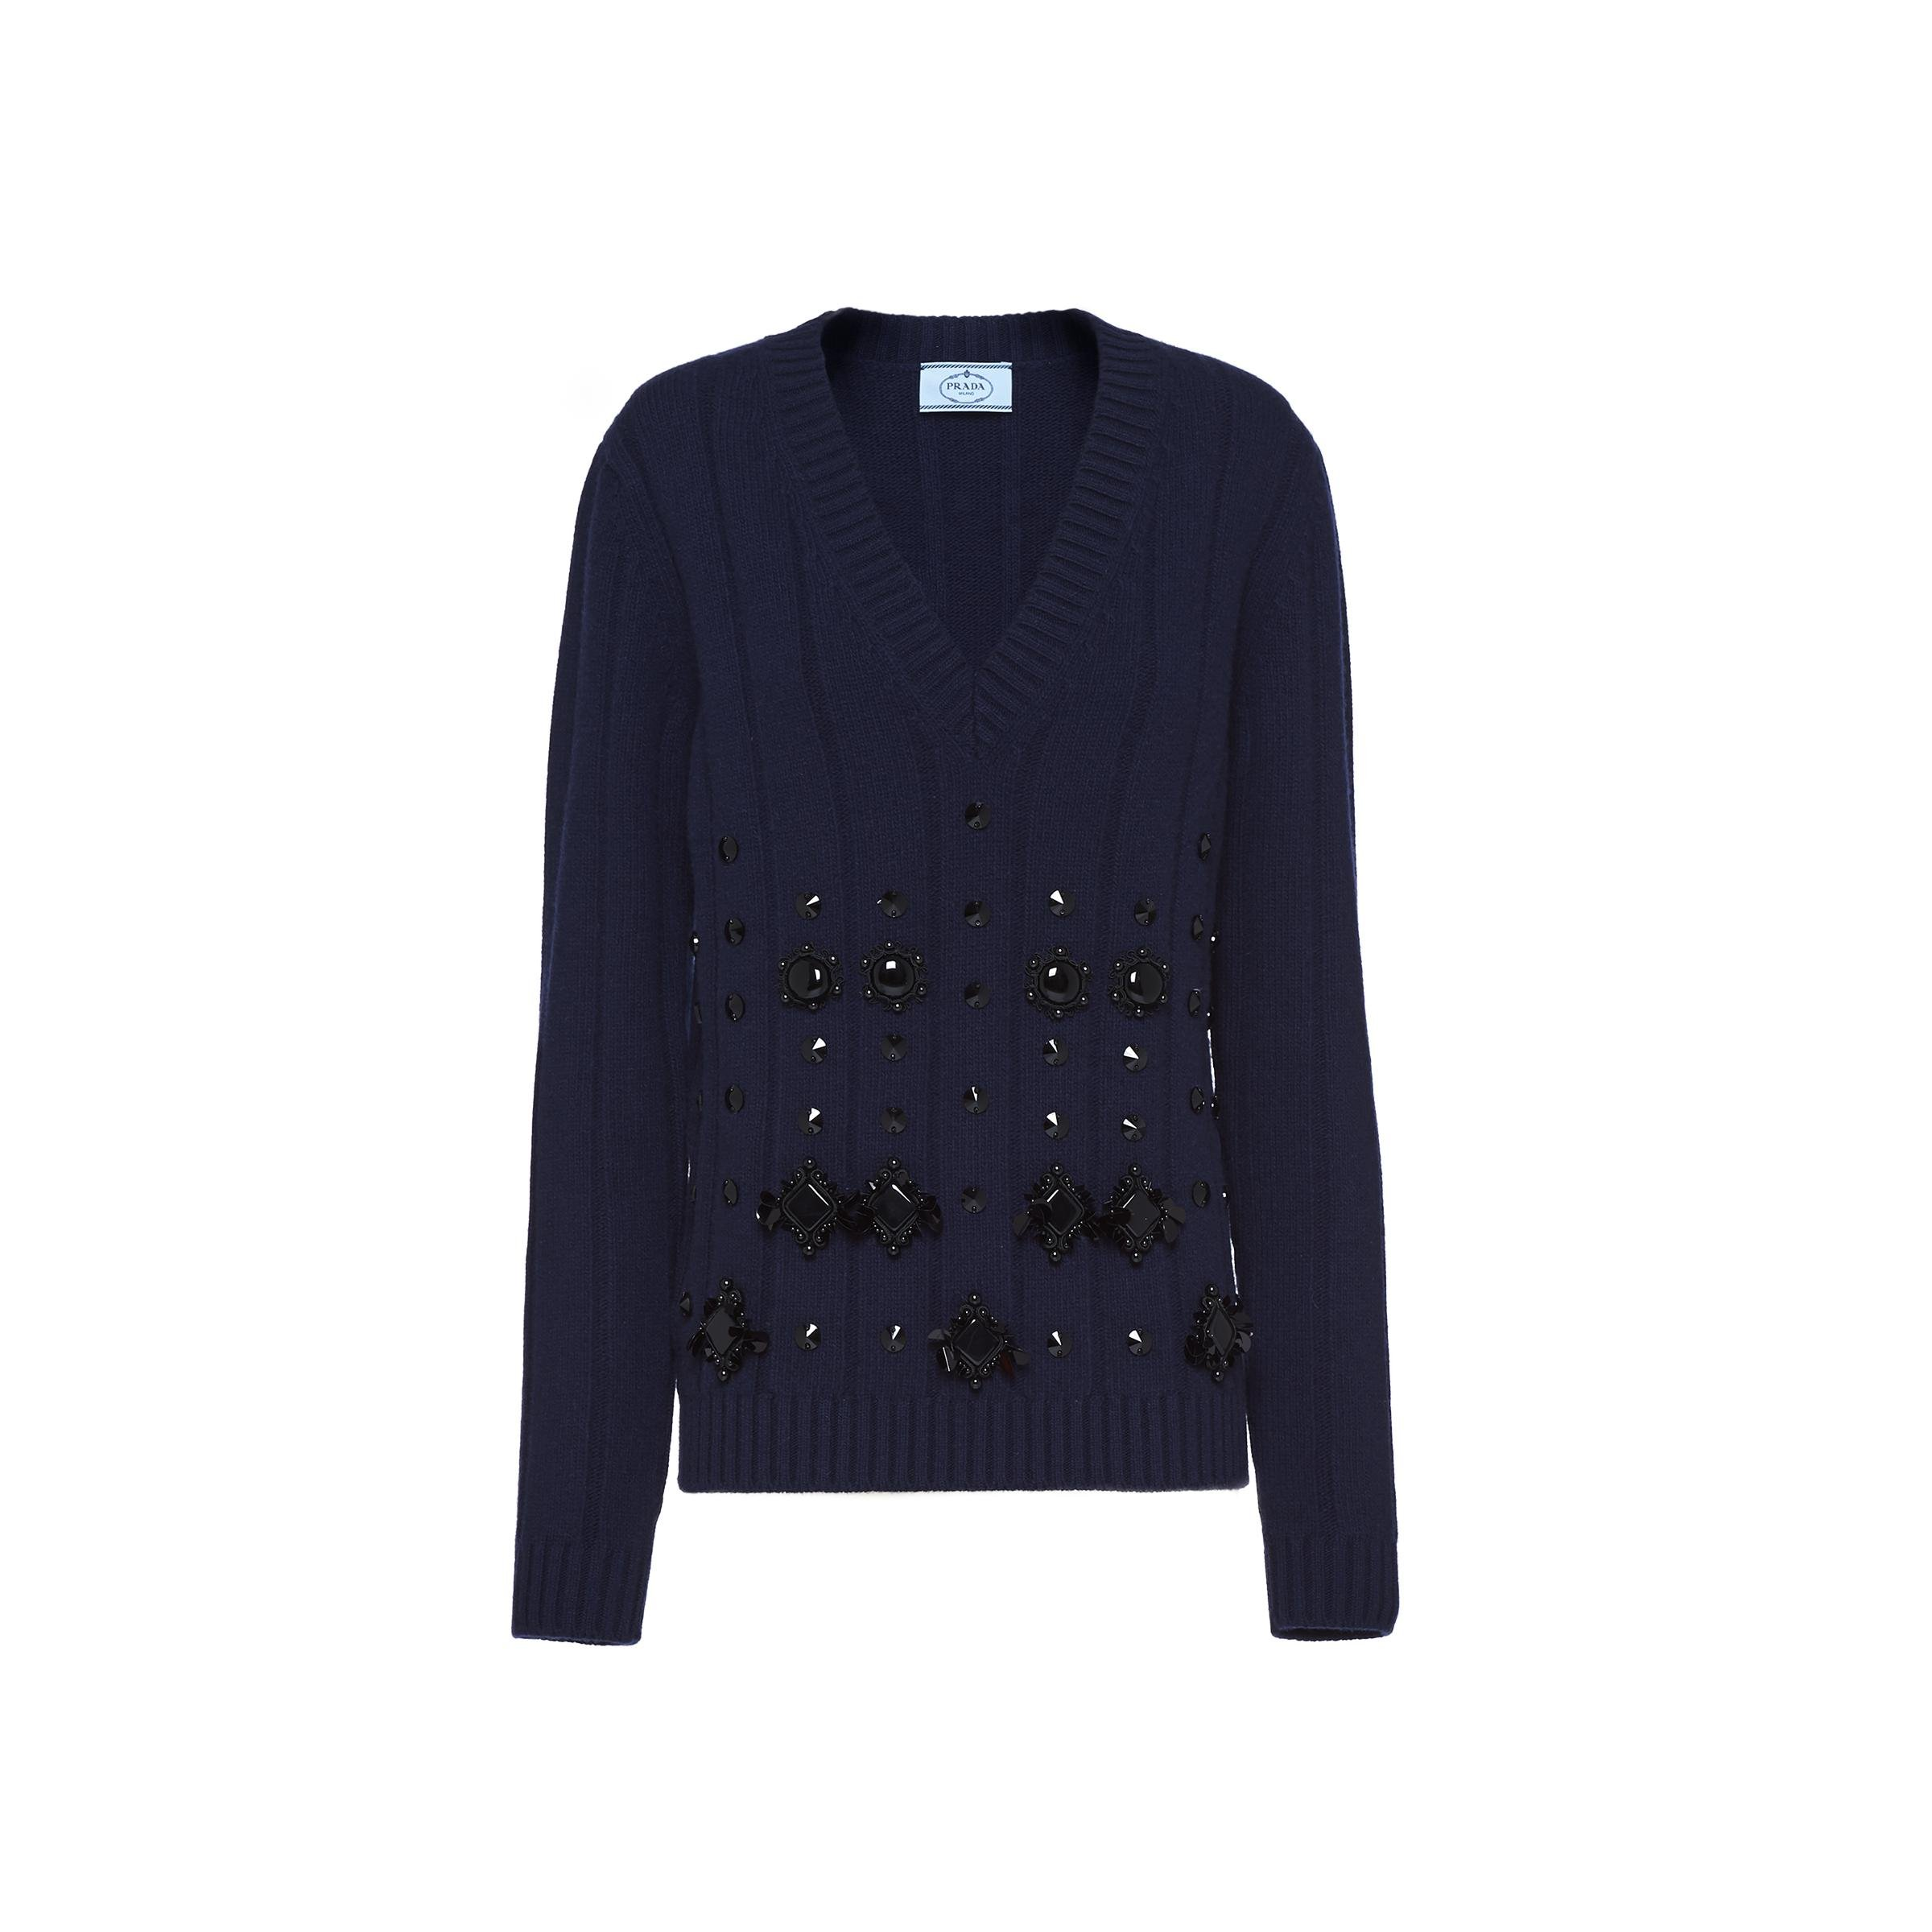 Wool And Cashmere V-neck Sweater Women Navy 0